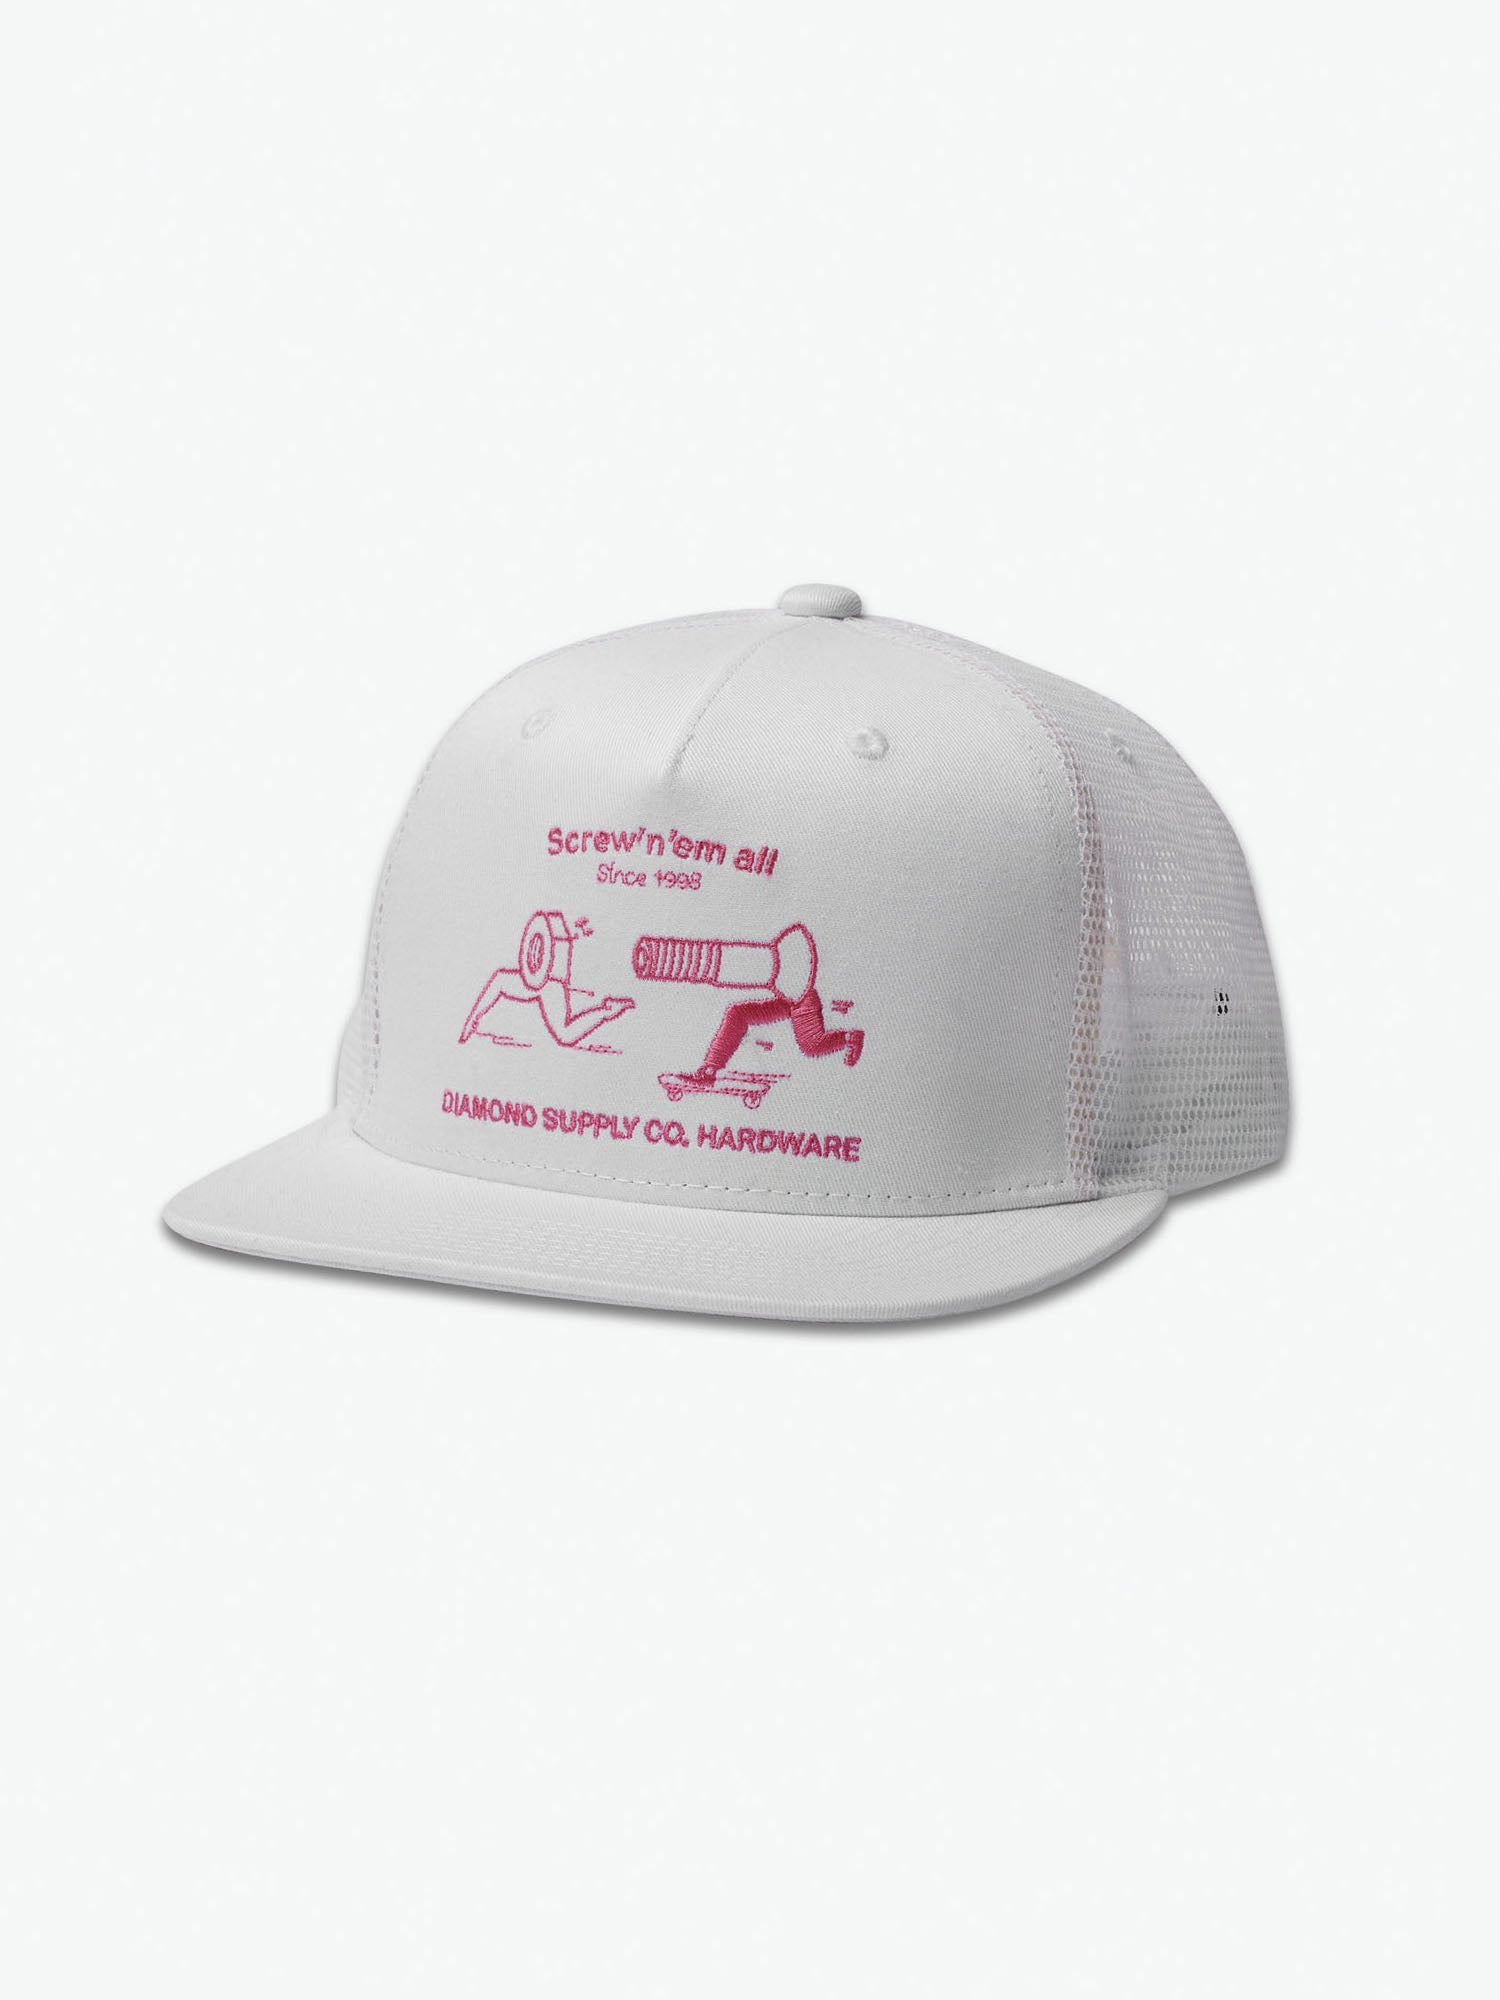 bce9be5fbe423c ... new arrivals screw em all snapback hat white diamond supply co. 2129d  ad647